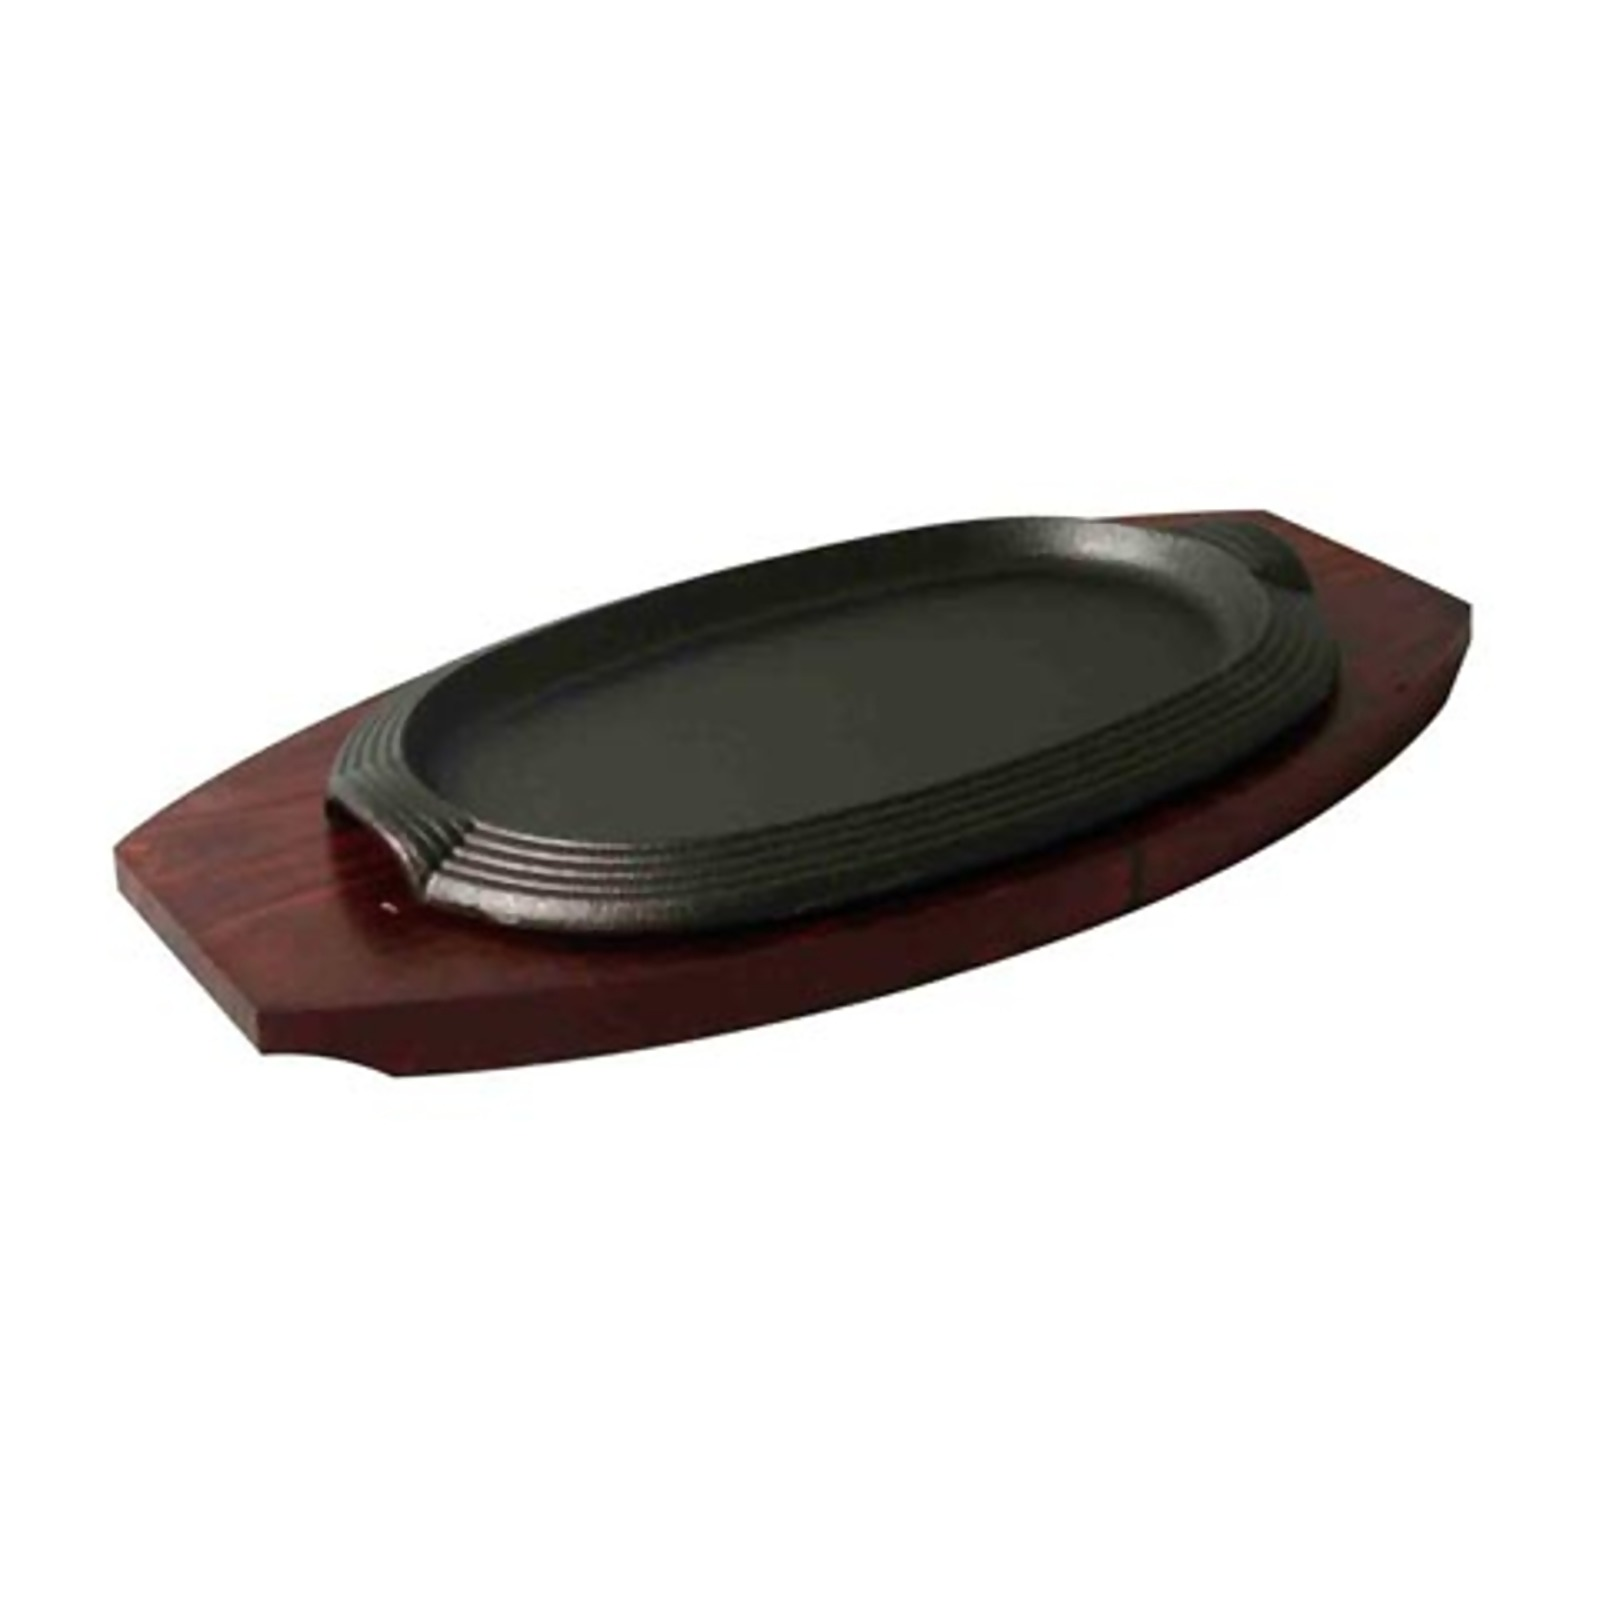 Oval Cast Iron Hot Plate L27Xw17Cm/23X14Cm W/Wooden Underliner